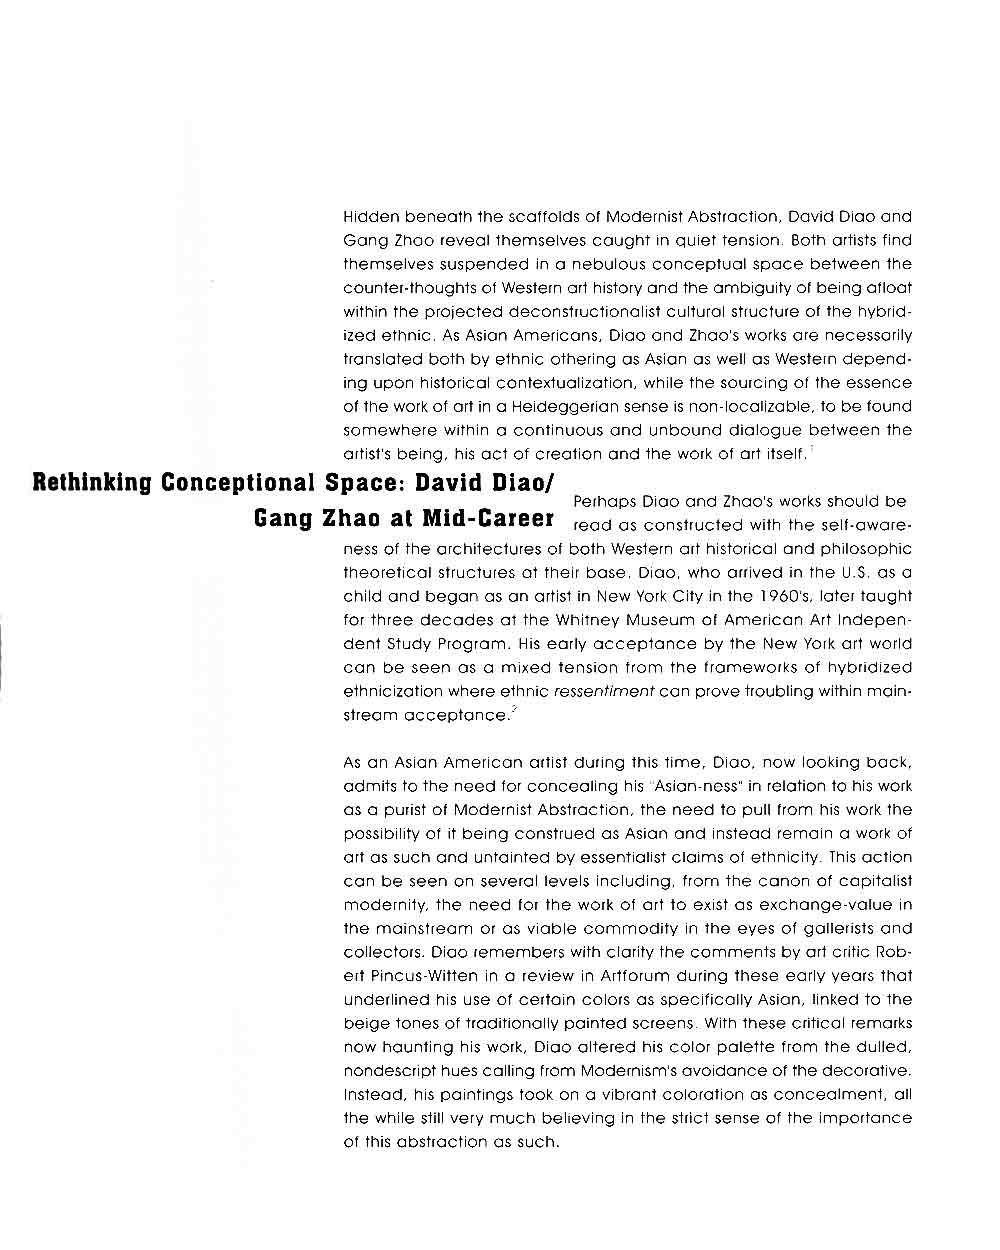 Rethinking a Conceptual Space, pg 2